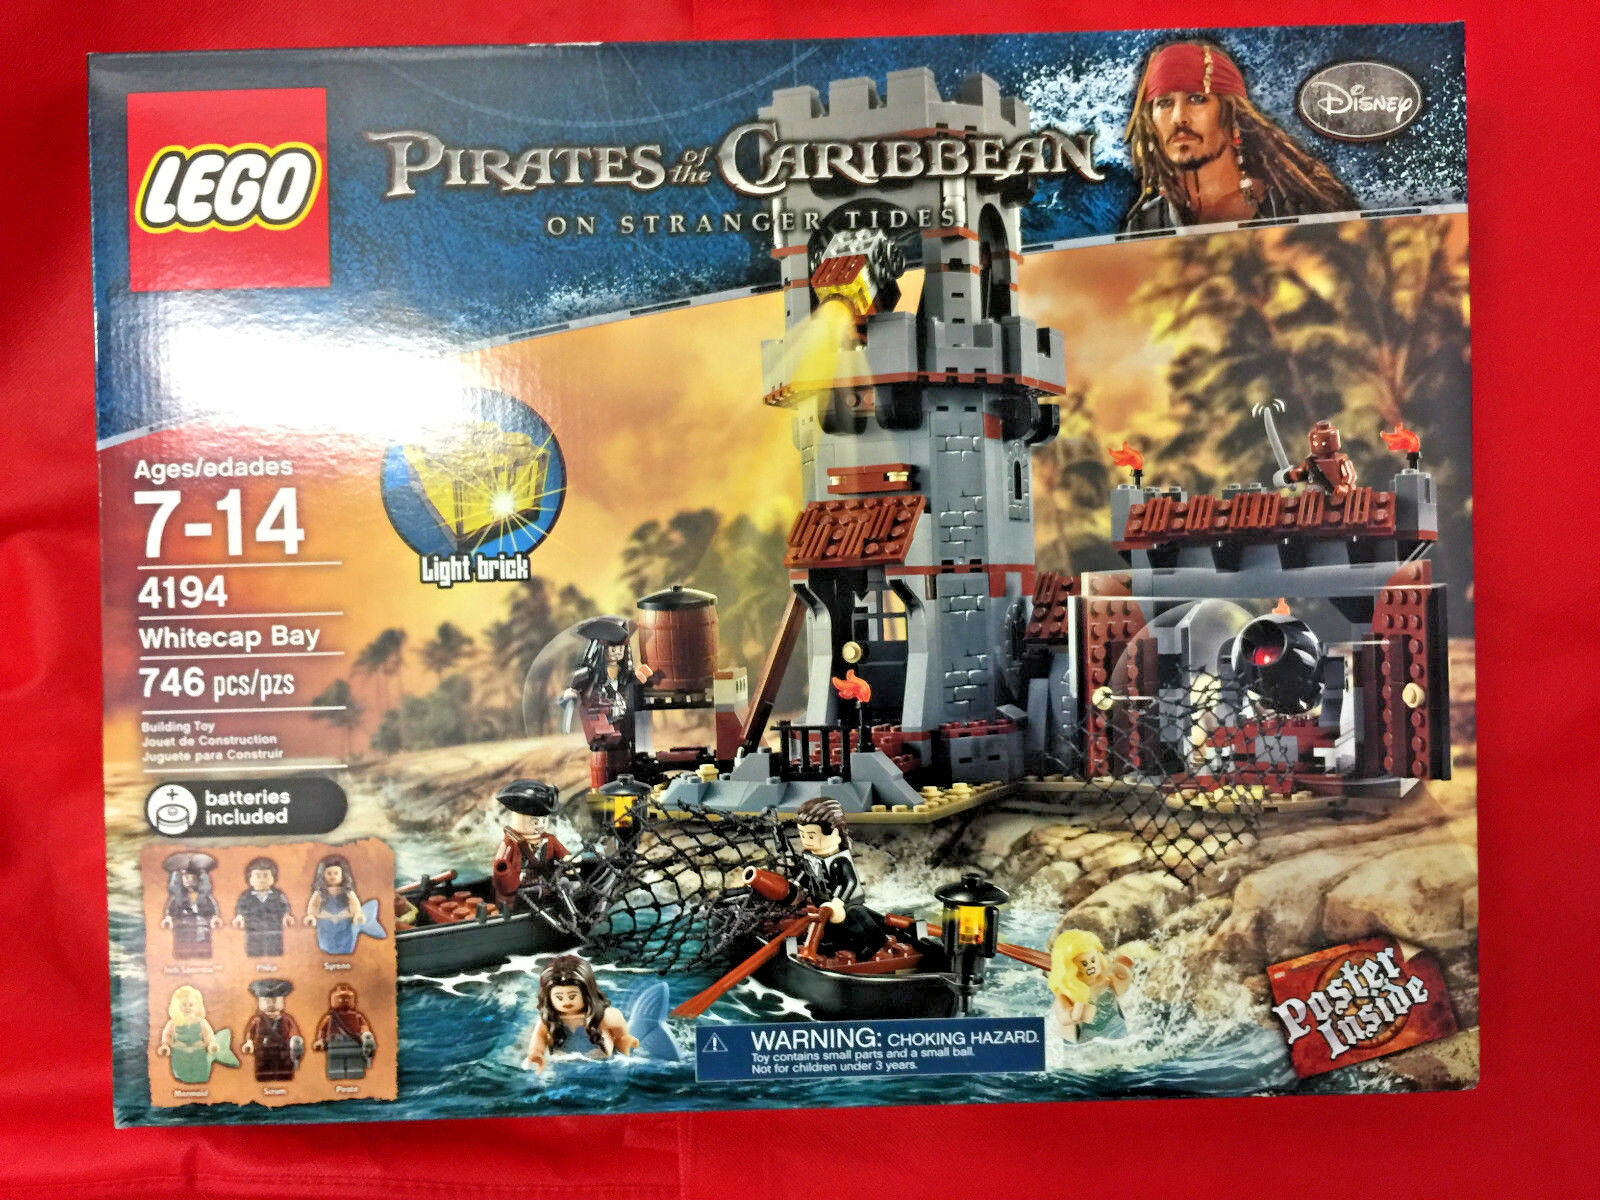 LEGO Pirates of the Caribbean WeißCAP BAY 4194 New Factory Sealed RETIrot